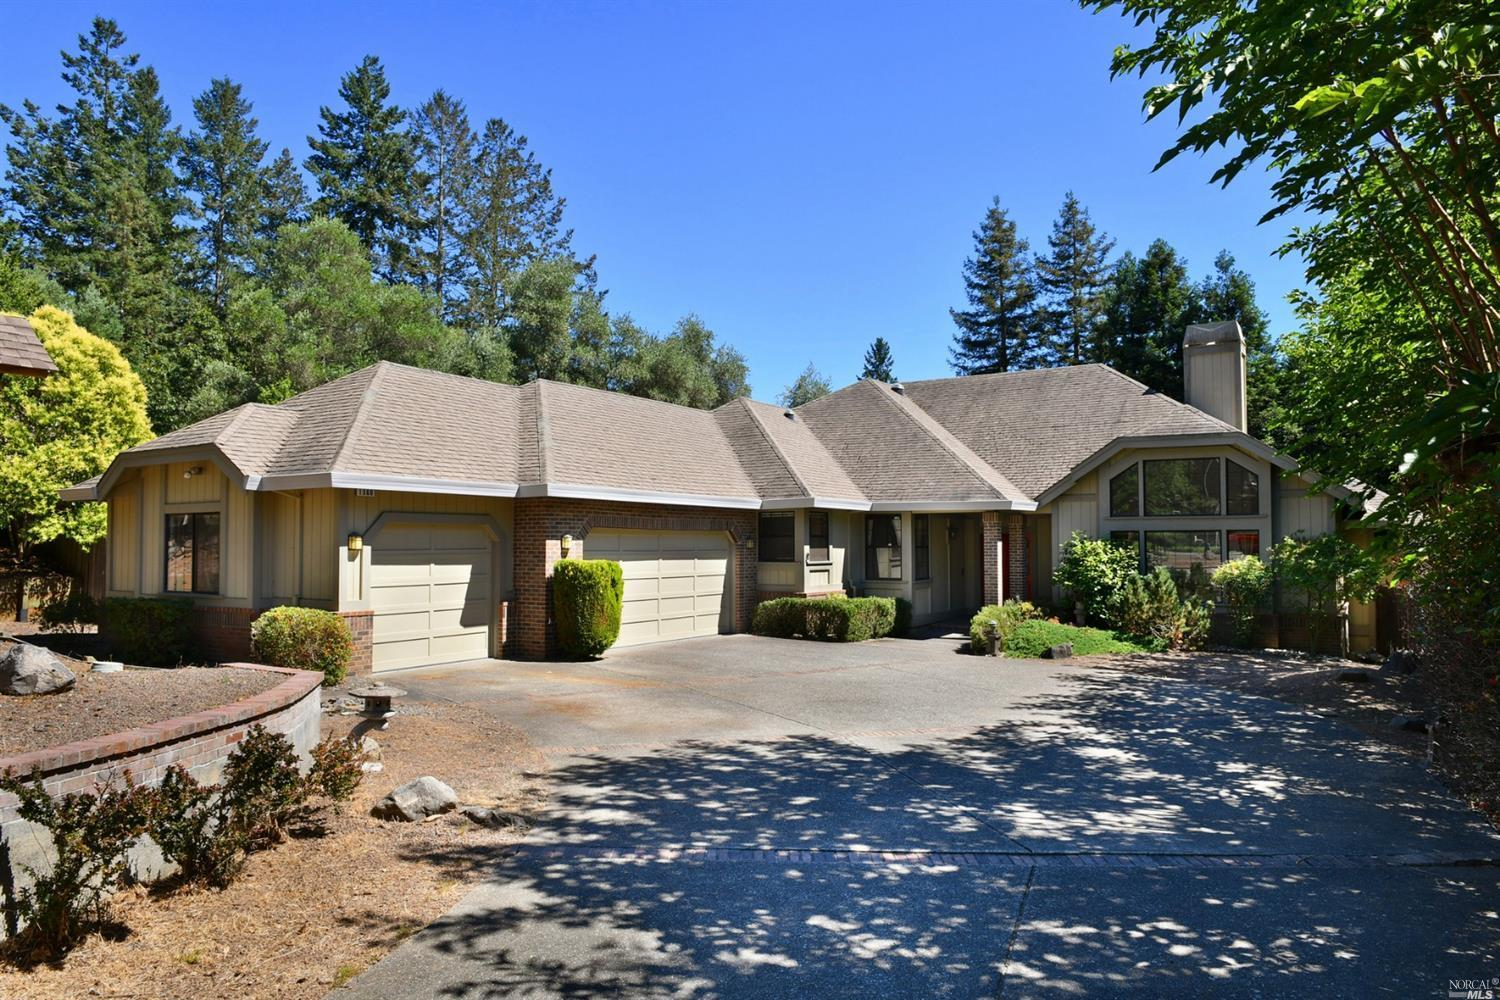 4 bed / 2 full, 1 partial baths Home in Santa Rosa for $1,295,000